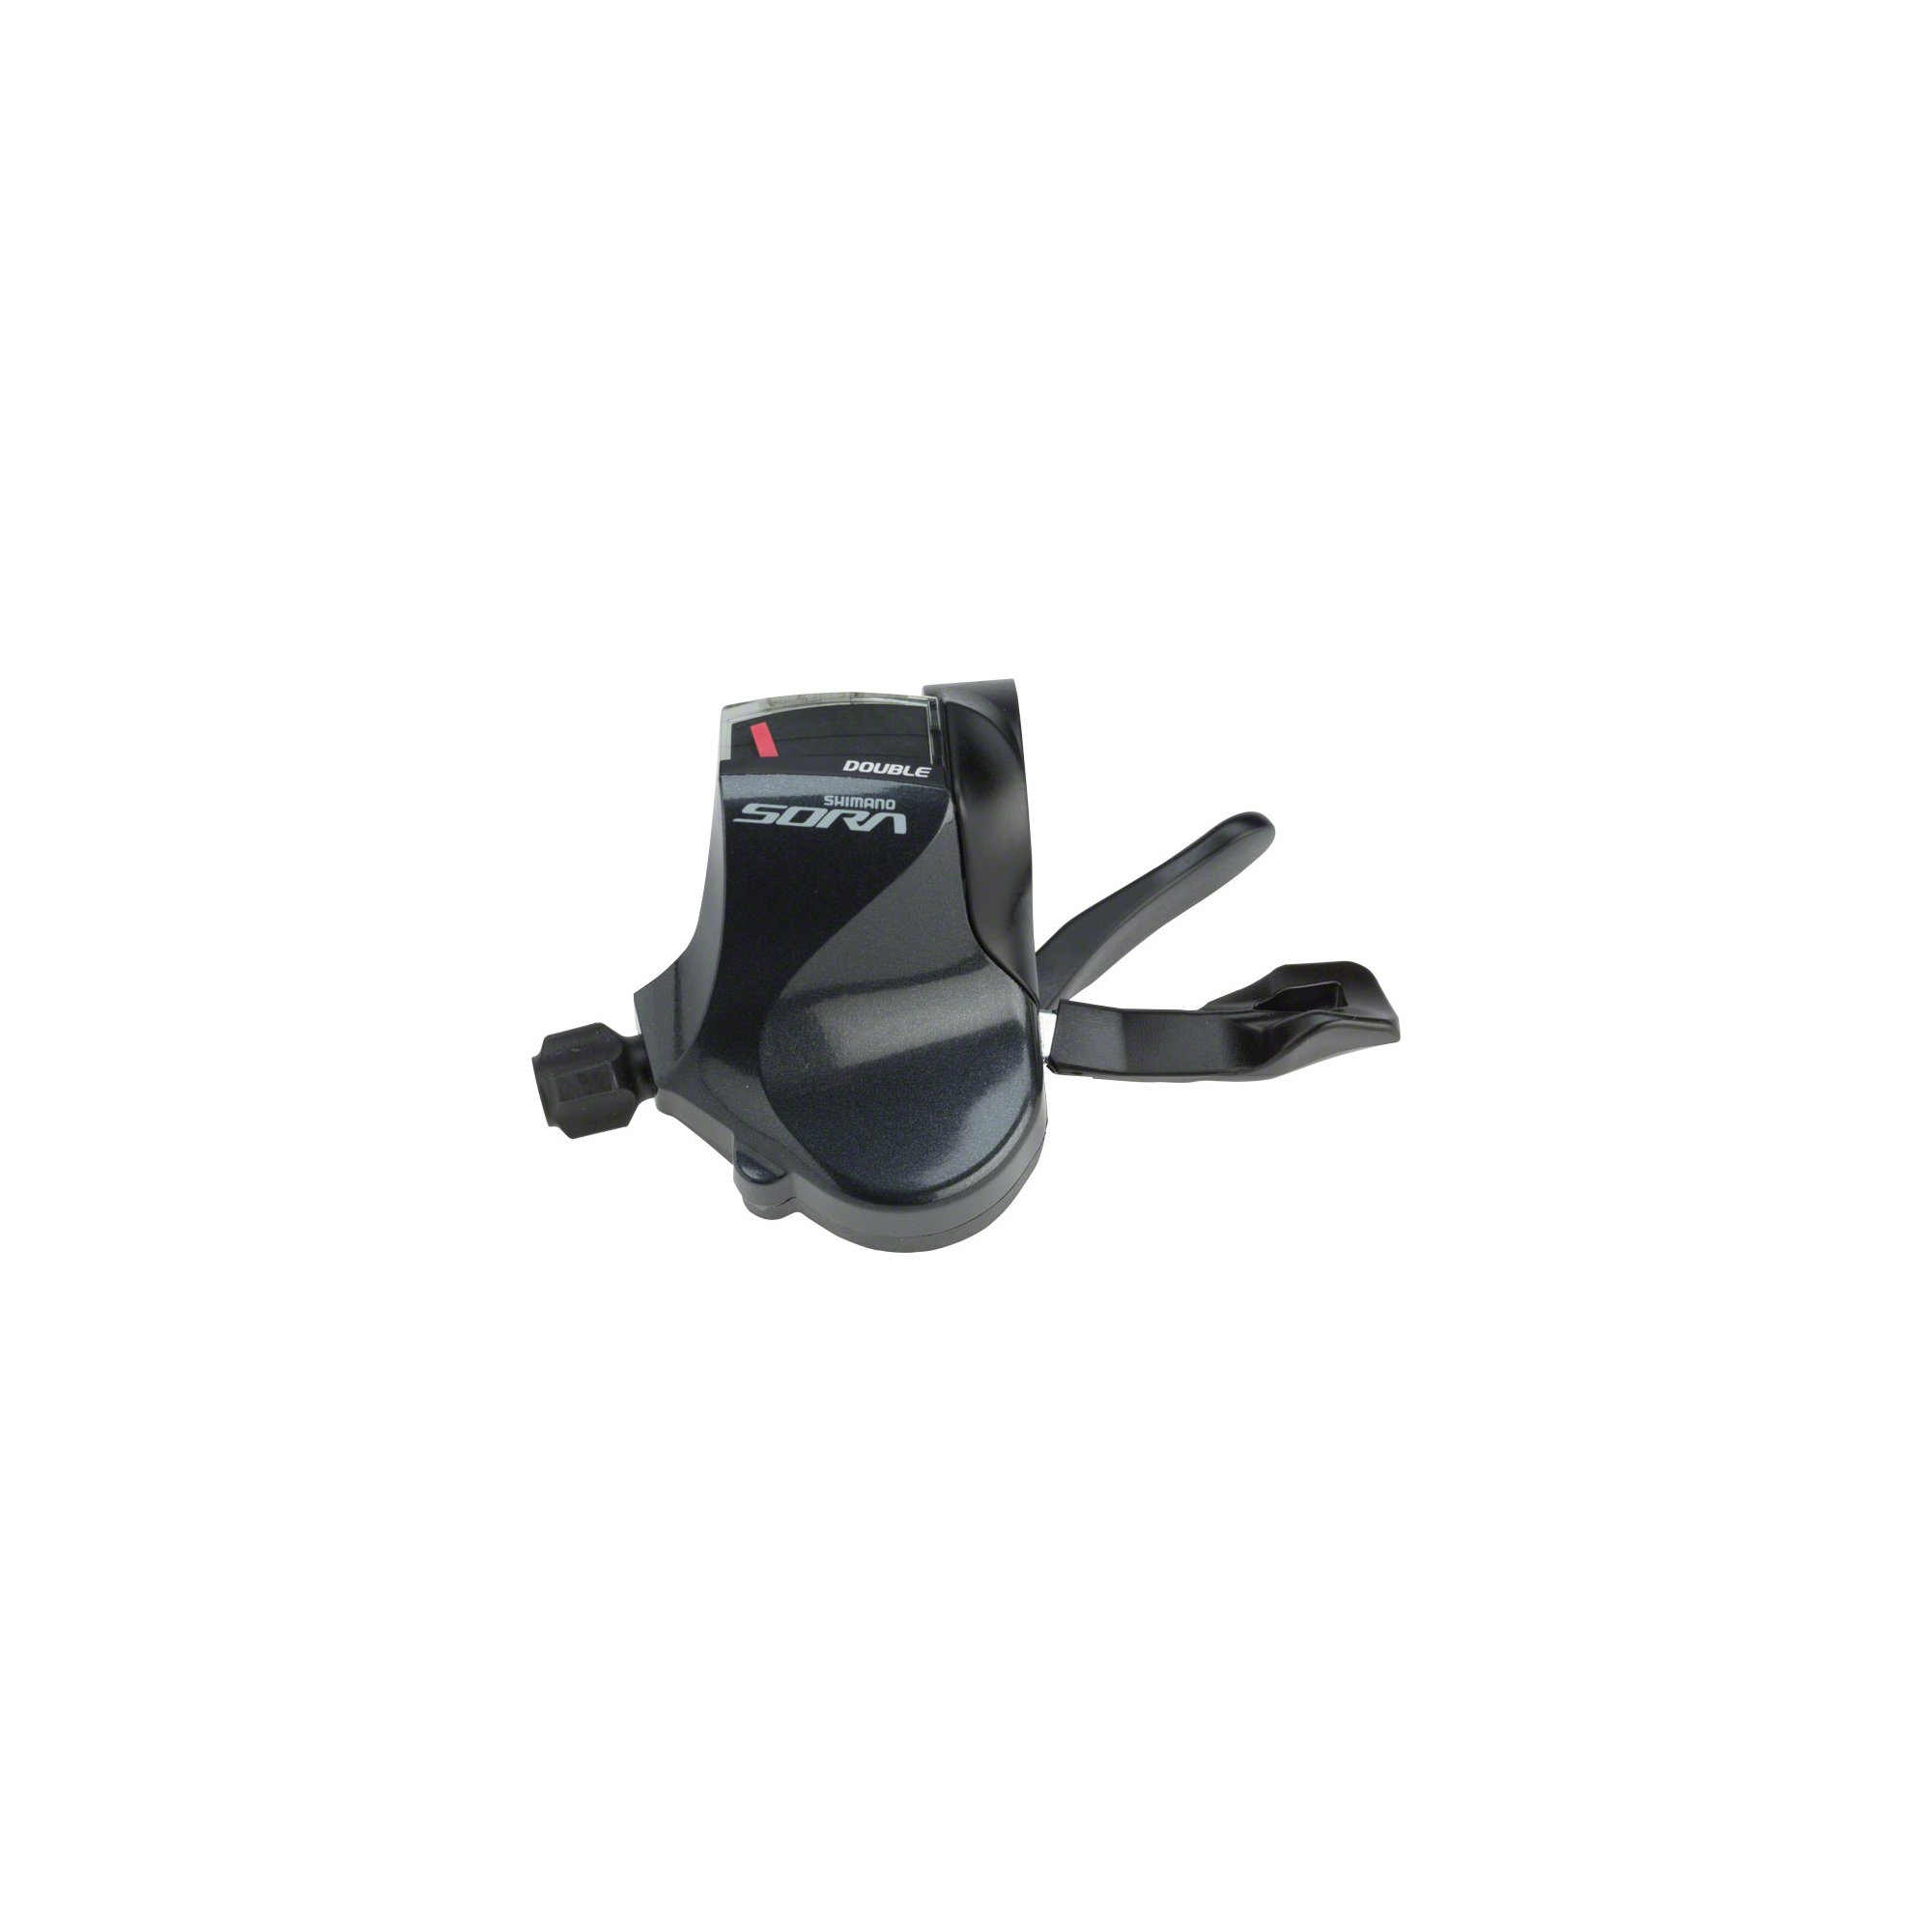 Shimano Sora R3000 Double (2x) Left Flat Bar Road Shifter